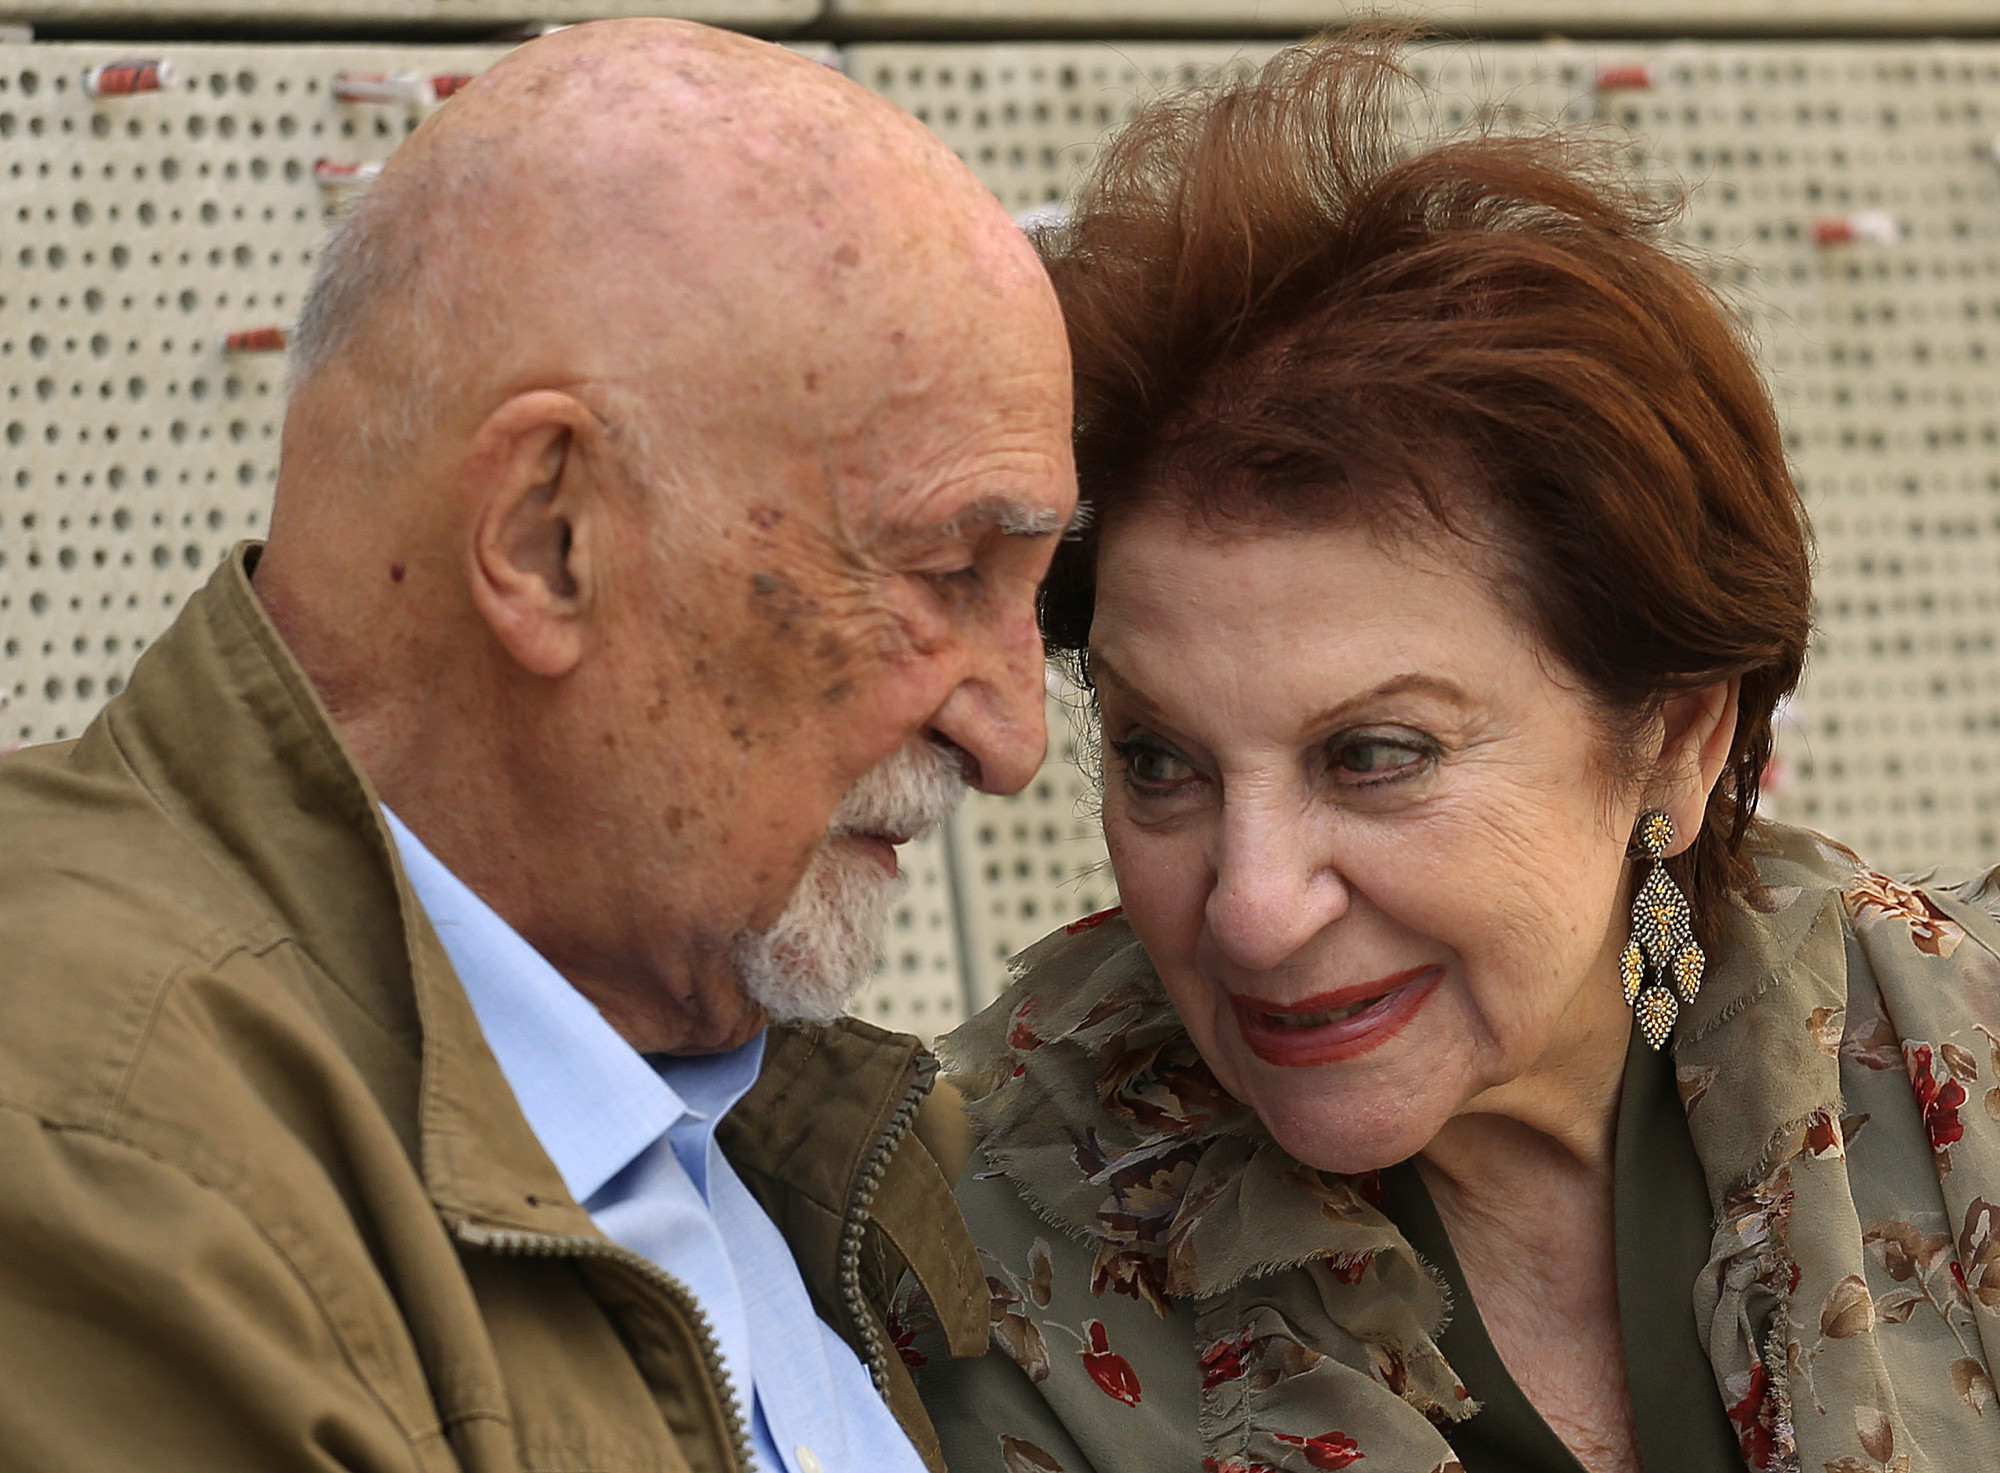 THE ASSOCIATED PRESSChildhood Holocaust survivors Simon Gronowski and Alice Gerstel Weit talk Wednesday as they are interviewed at the Los Angeles Holocaust Museum, after their reunion after more than 70 years.